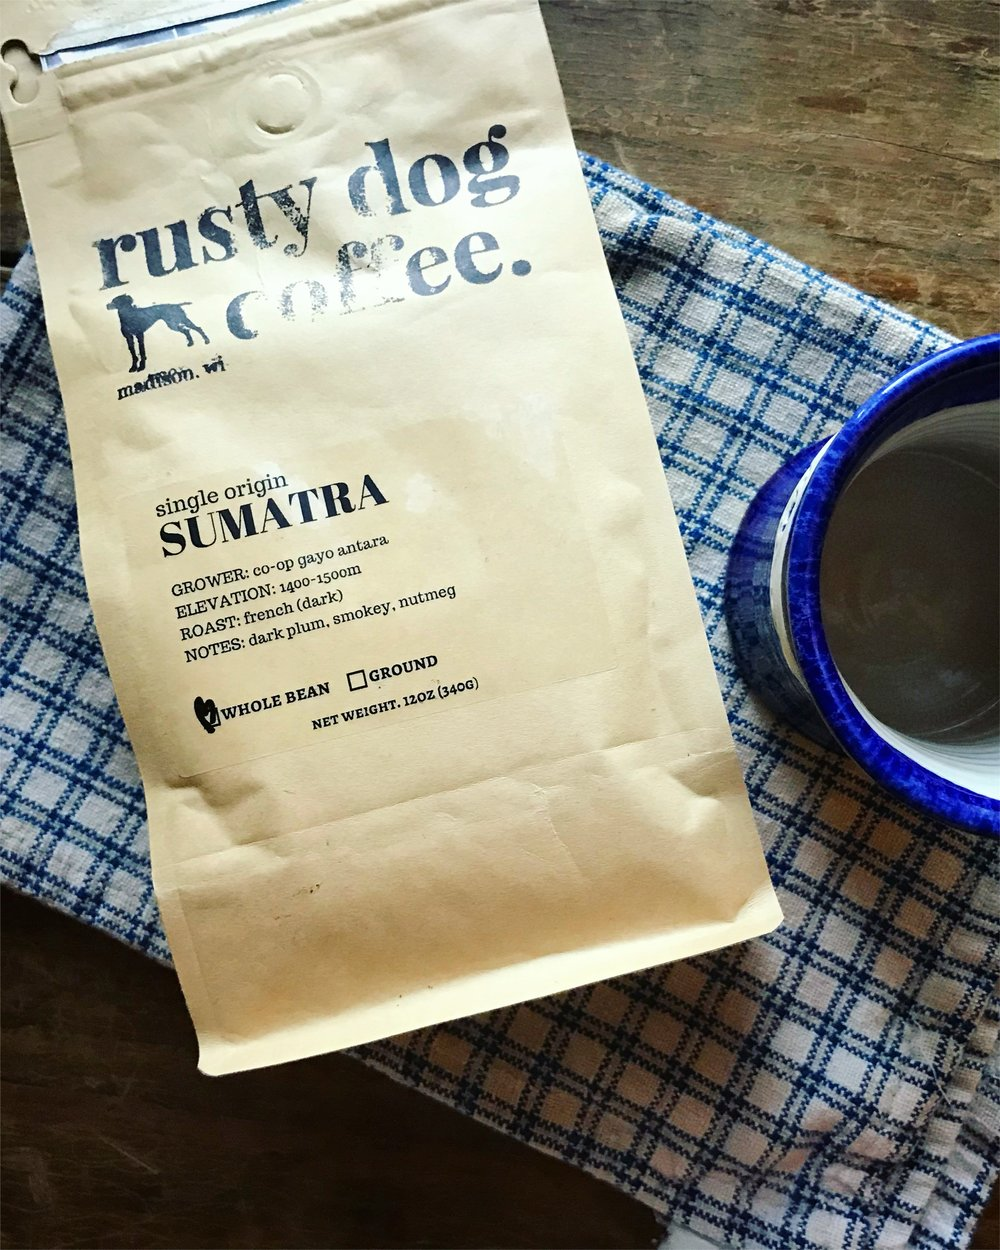 Coffee Share - Provided by Rusty Dog Coffee$216 for a 12-ounce bag of coffee delivered weekly (18 pounds total)$118 for a 12-ounce bag of coffee delivered every-other-week delivery (9 pounds total)